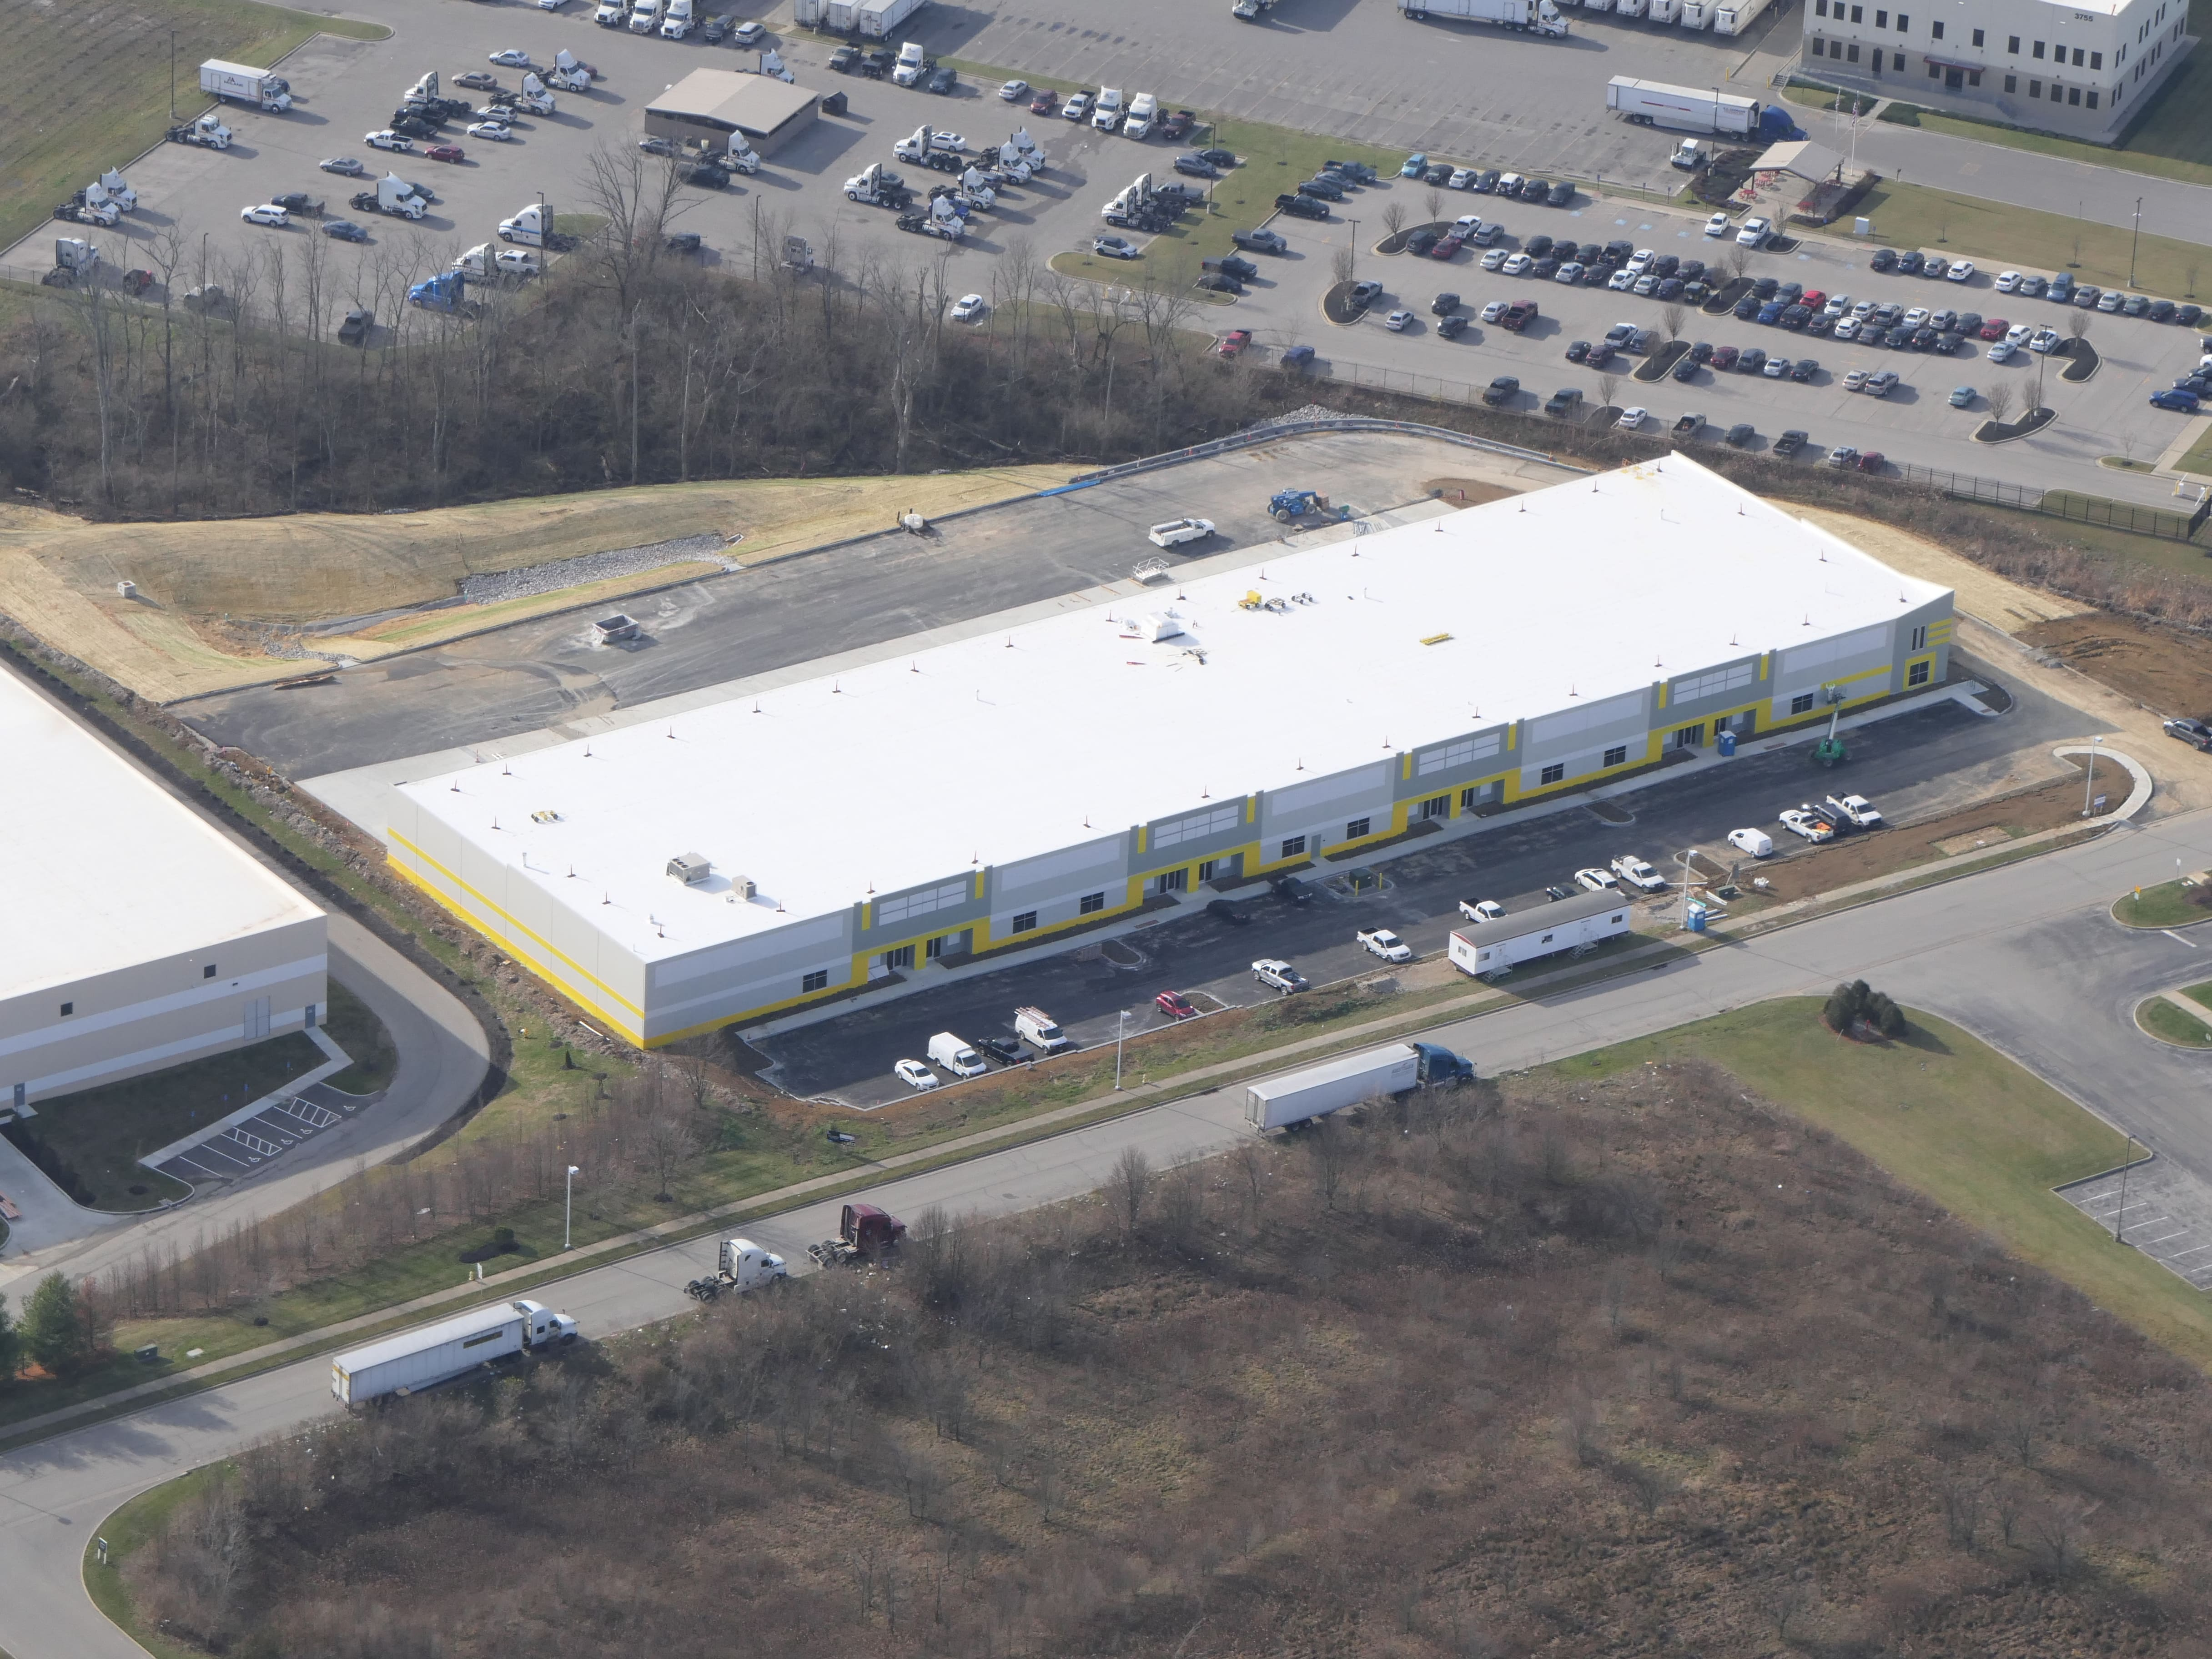 Lot 6, drone, industrial warehouse building, Hebron, KY